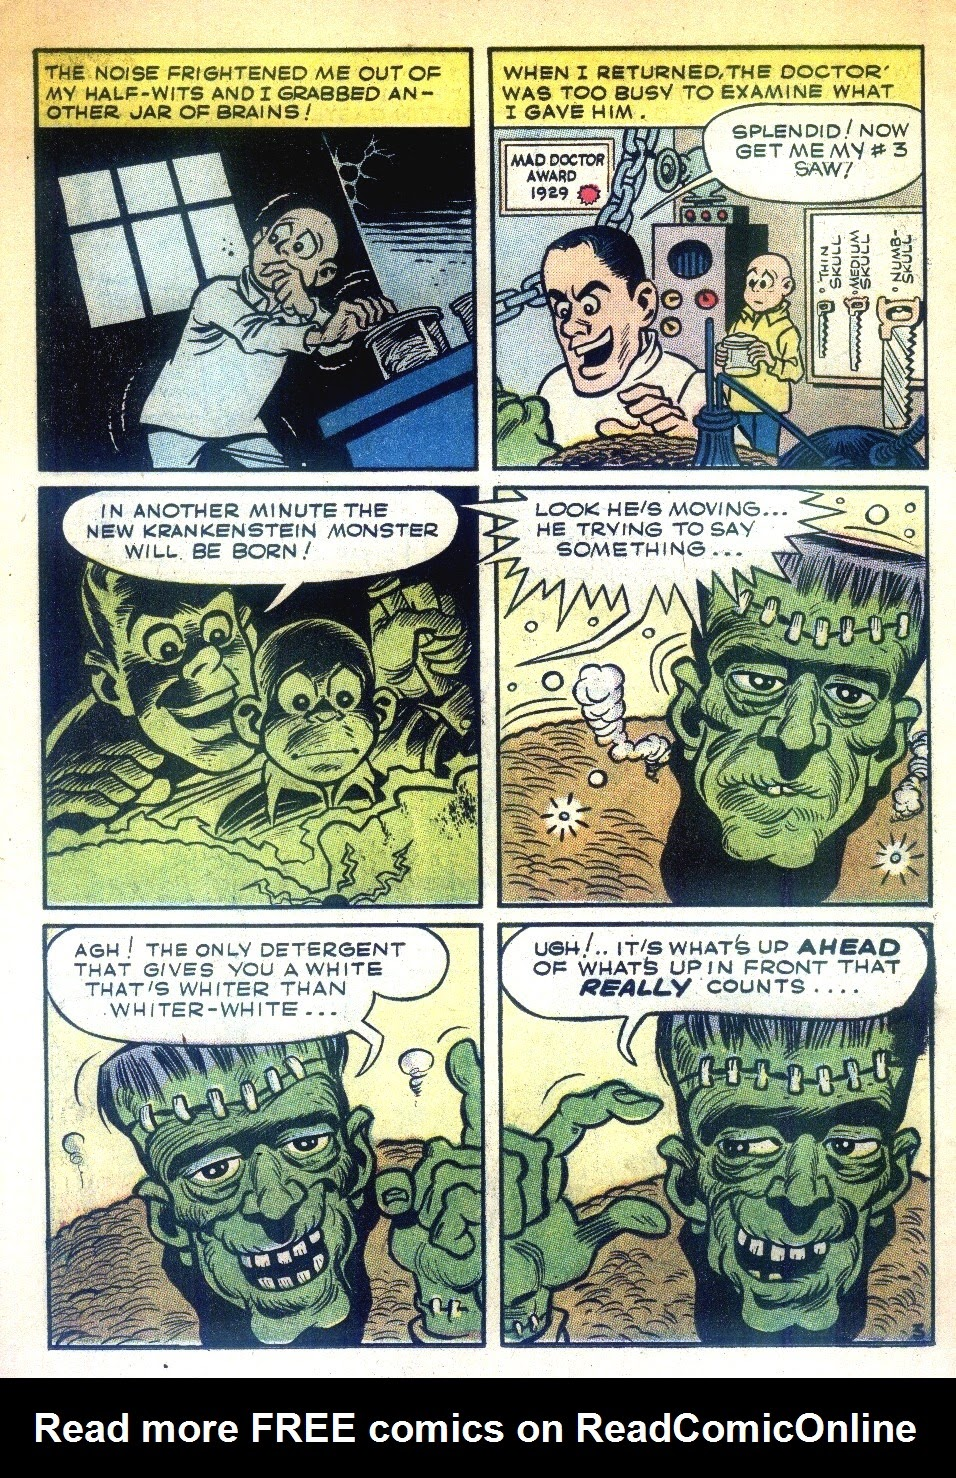 Read online Tales Calculated to Drive You Bats comic -  Issue #3 - 6